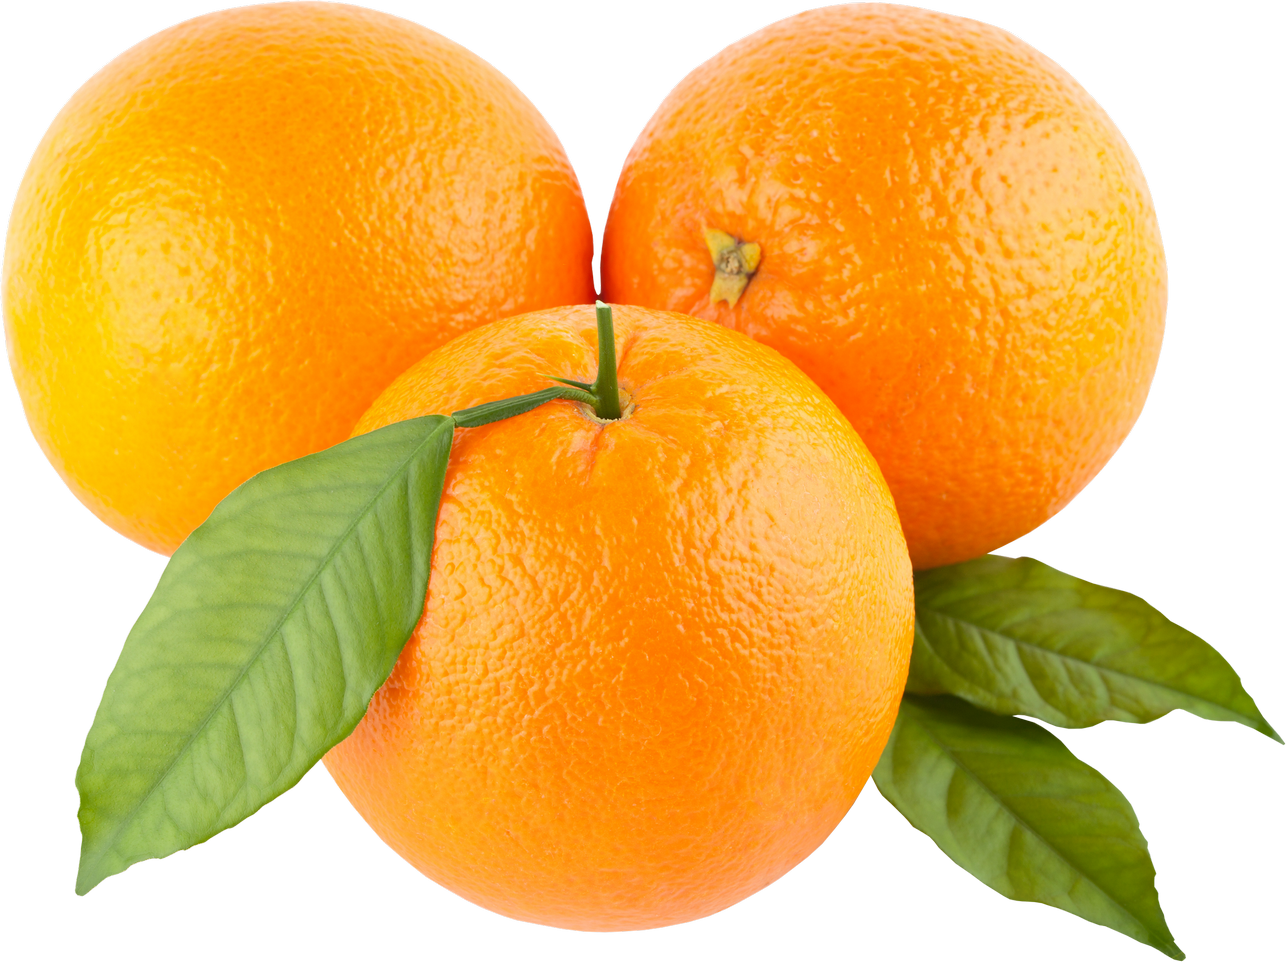 Clipart fruit orange. Oranges png image purepng